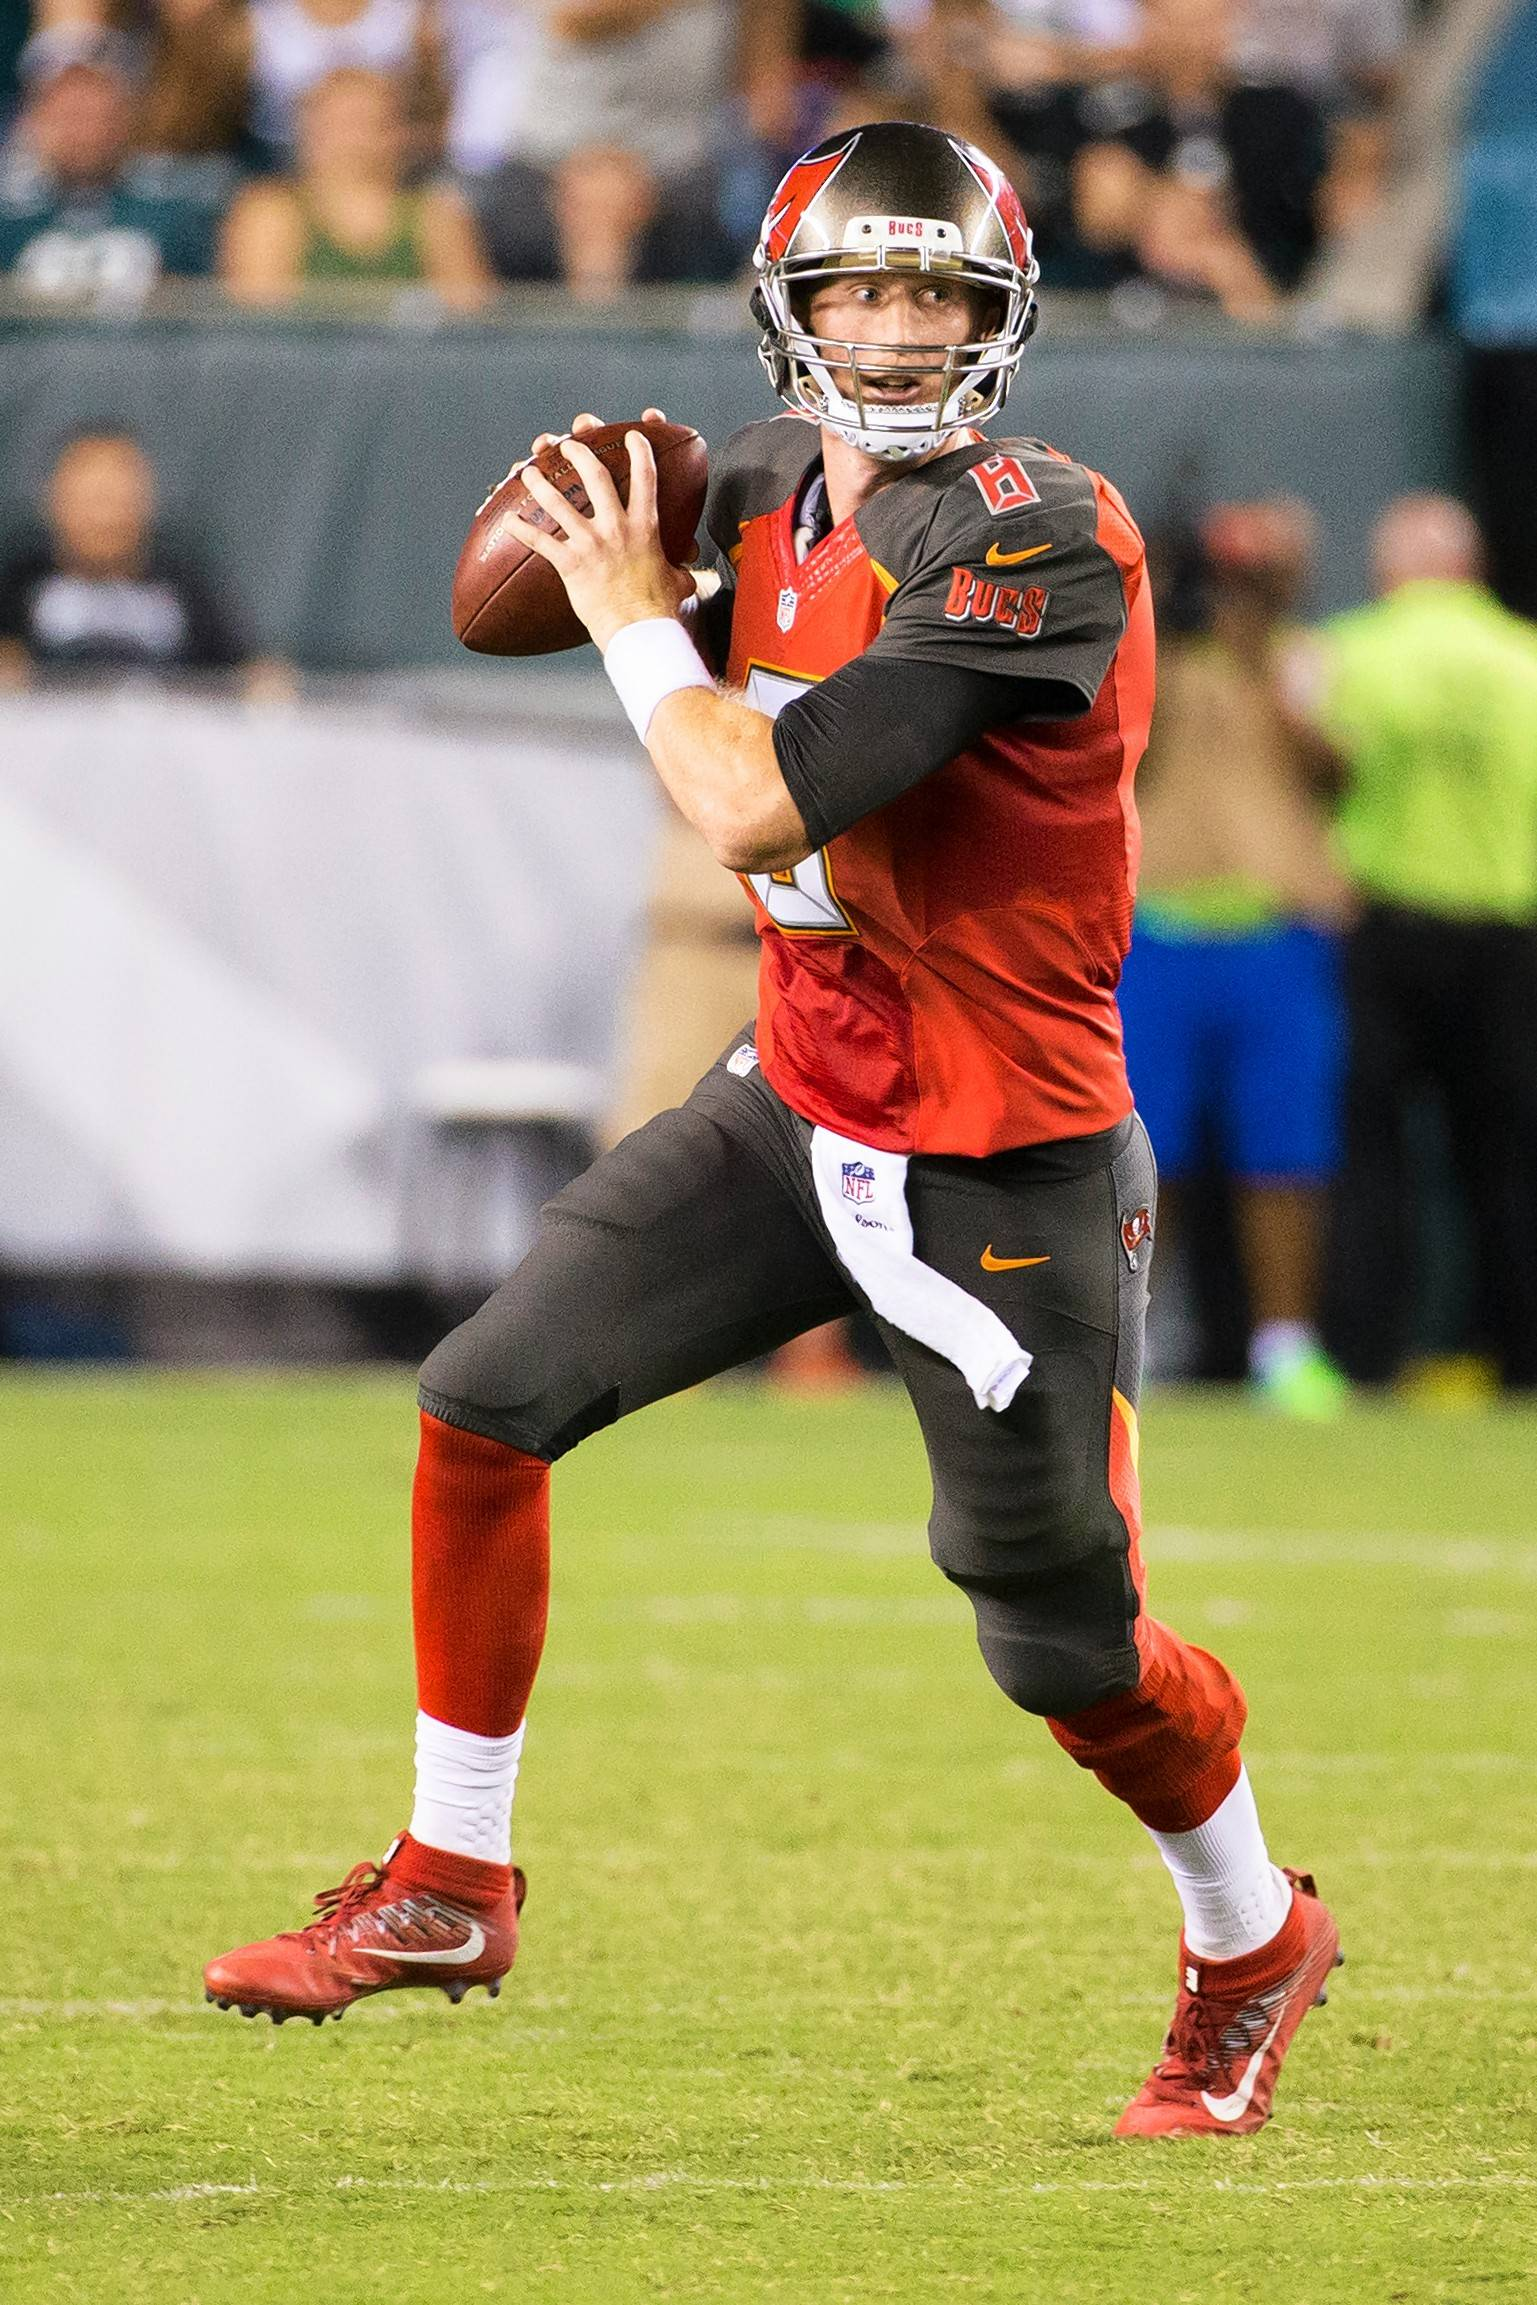 Tampa Bay Buccaneers quarterback Mike Glennon (8) in action during the second half of a the preseason NFL football game against the Philadelphia Eagles, Thursday, Aug. 11, 2016, in Philadelphia. The Eagles won 17-9. (AP Photo/Chris Szagola)